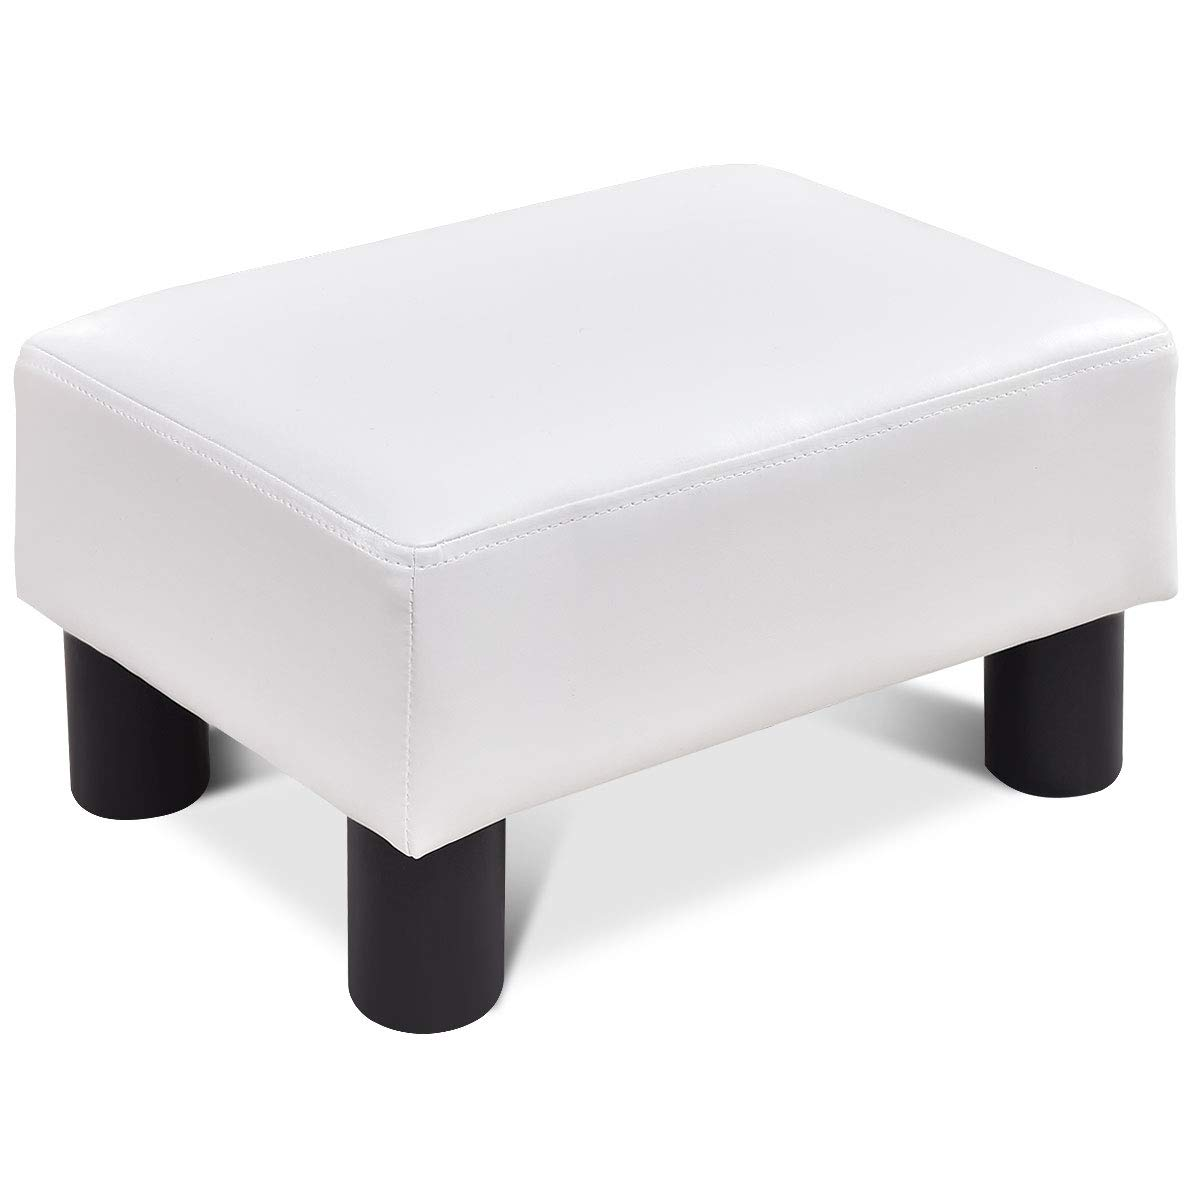 Giantex 16 Small Footstool PU Leather Ottoman Footrest Modern Home Living Room Bedroom Rectangular Stool with Padded Seat Plastic Wood Legs White